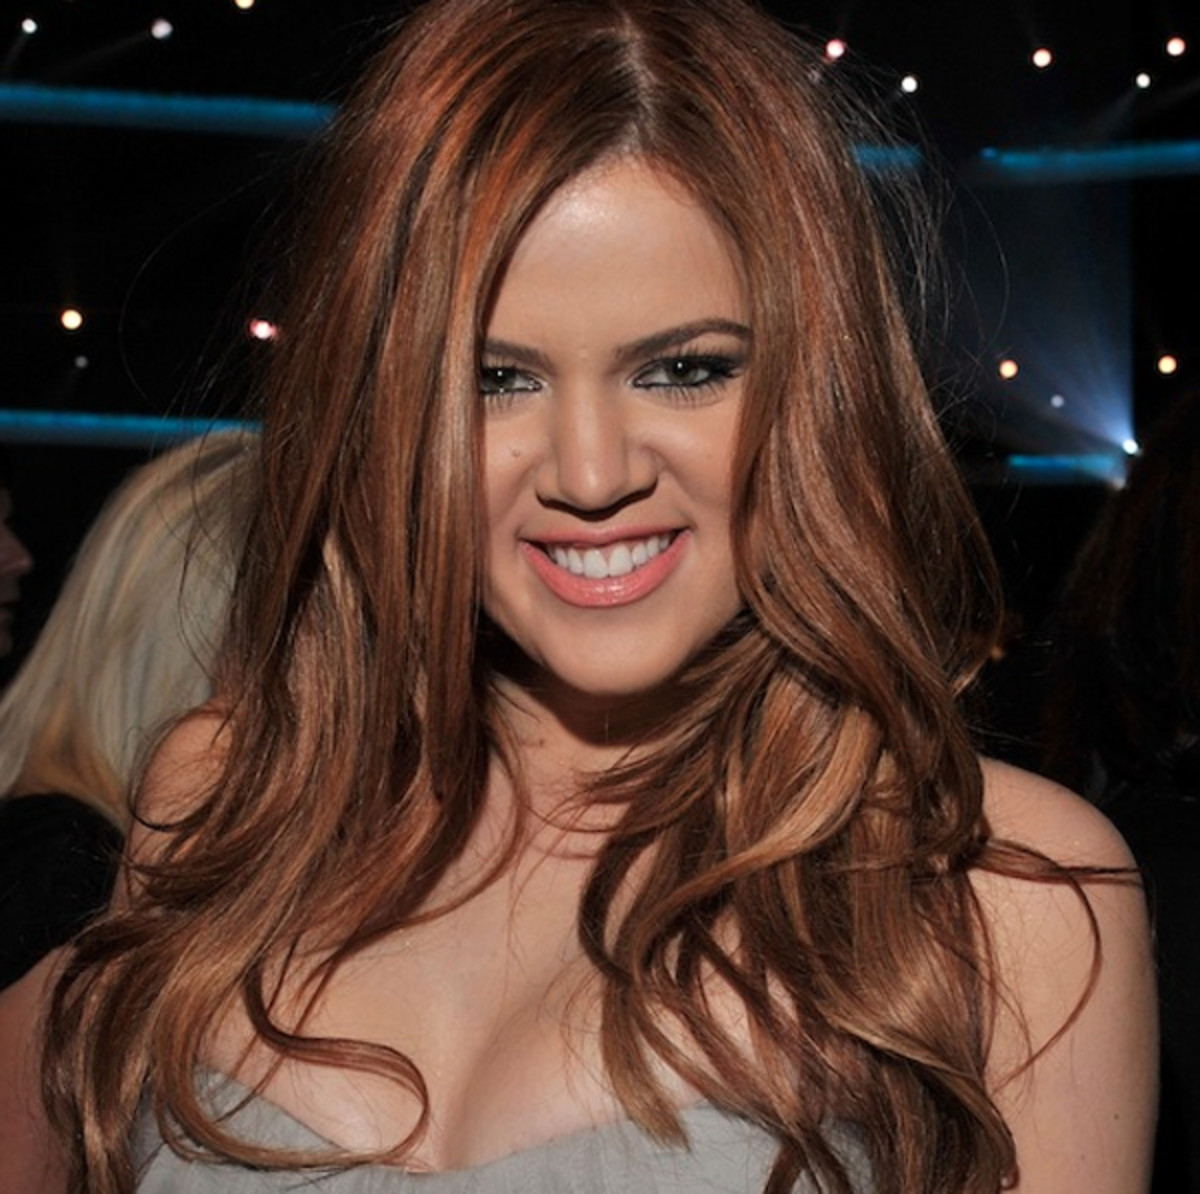 Khloe-Kardashian-Peoples-Choice-Awards-Jan-2011